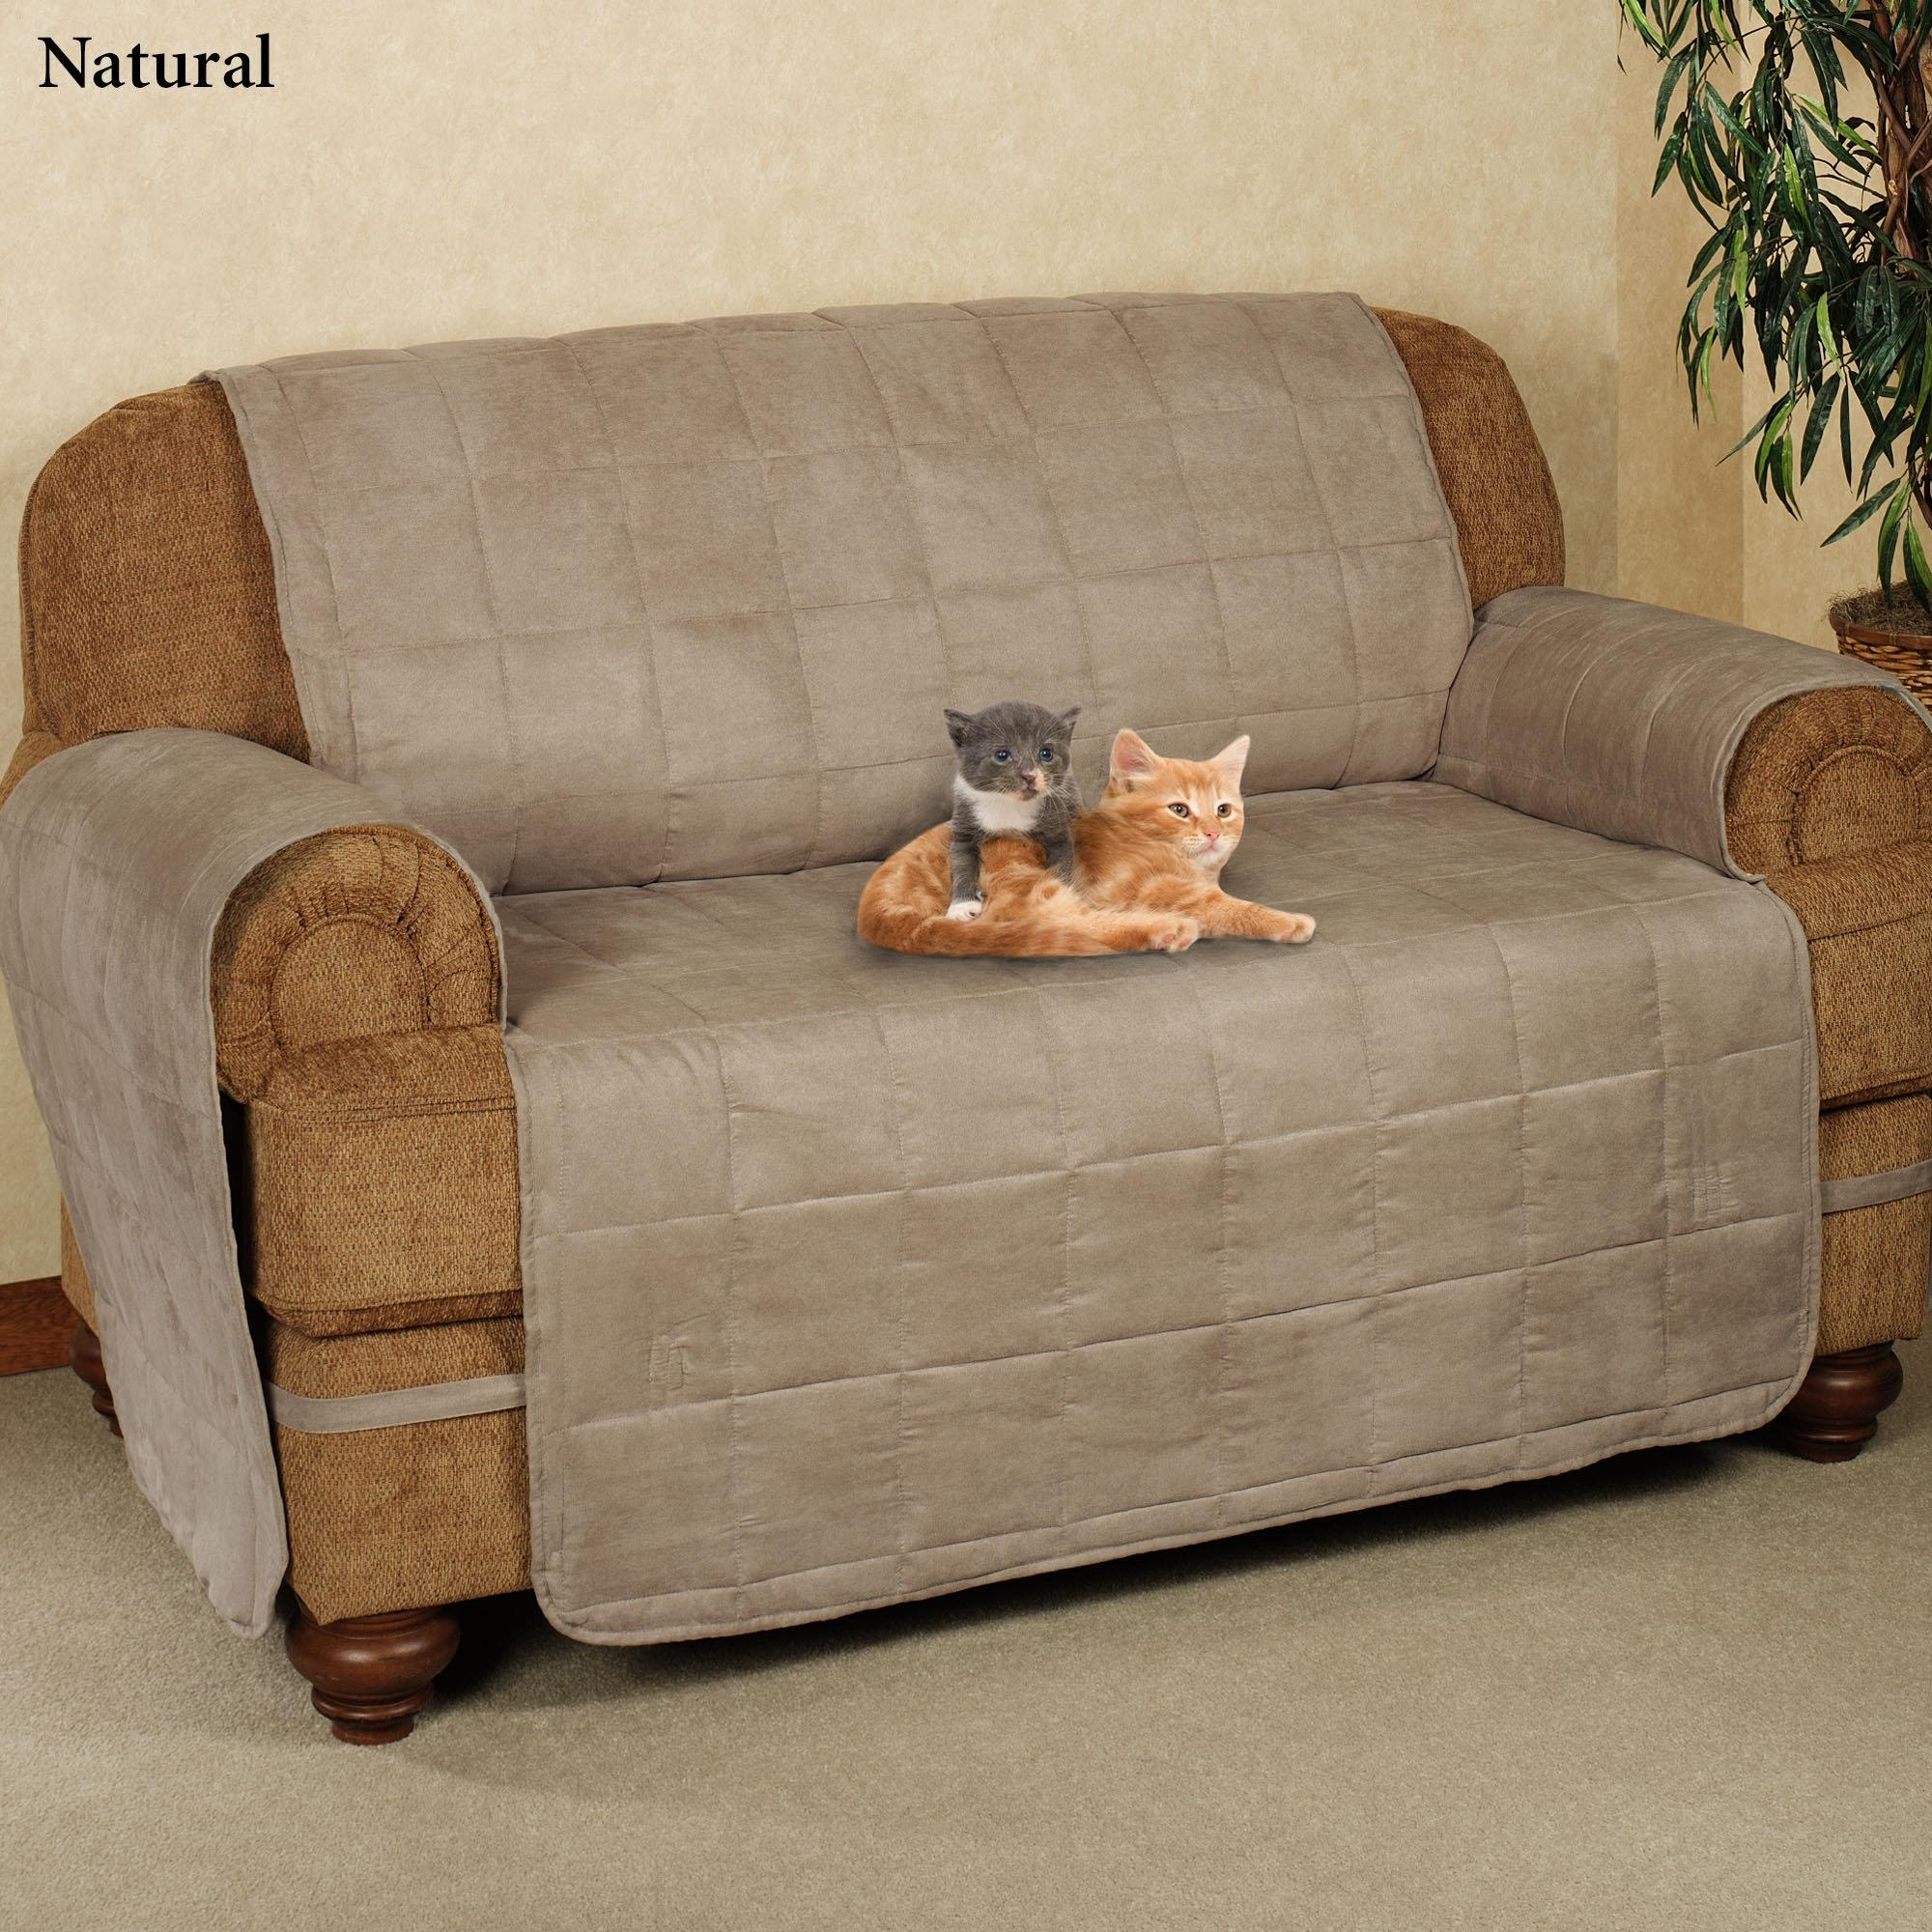 Furniture: Sectional Slipcover | Slip Covers For Sofas | Couch Intended For Walmart Slipcovers For Sofas (Image 9 of 20)